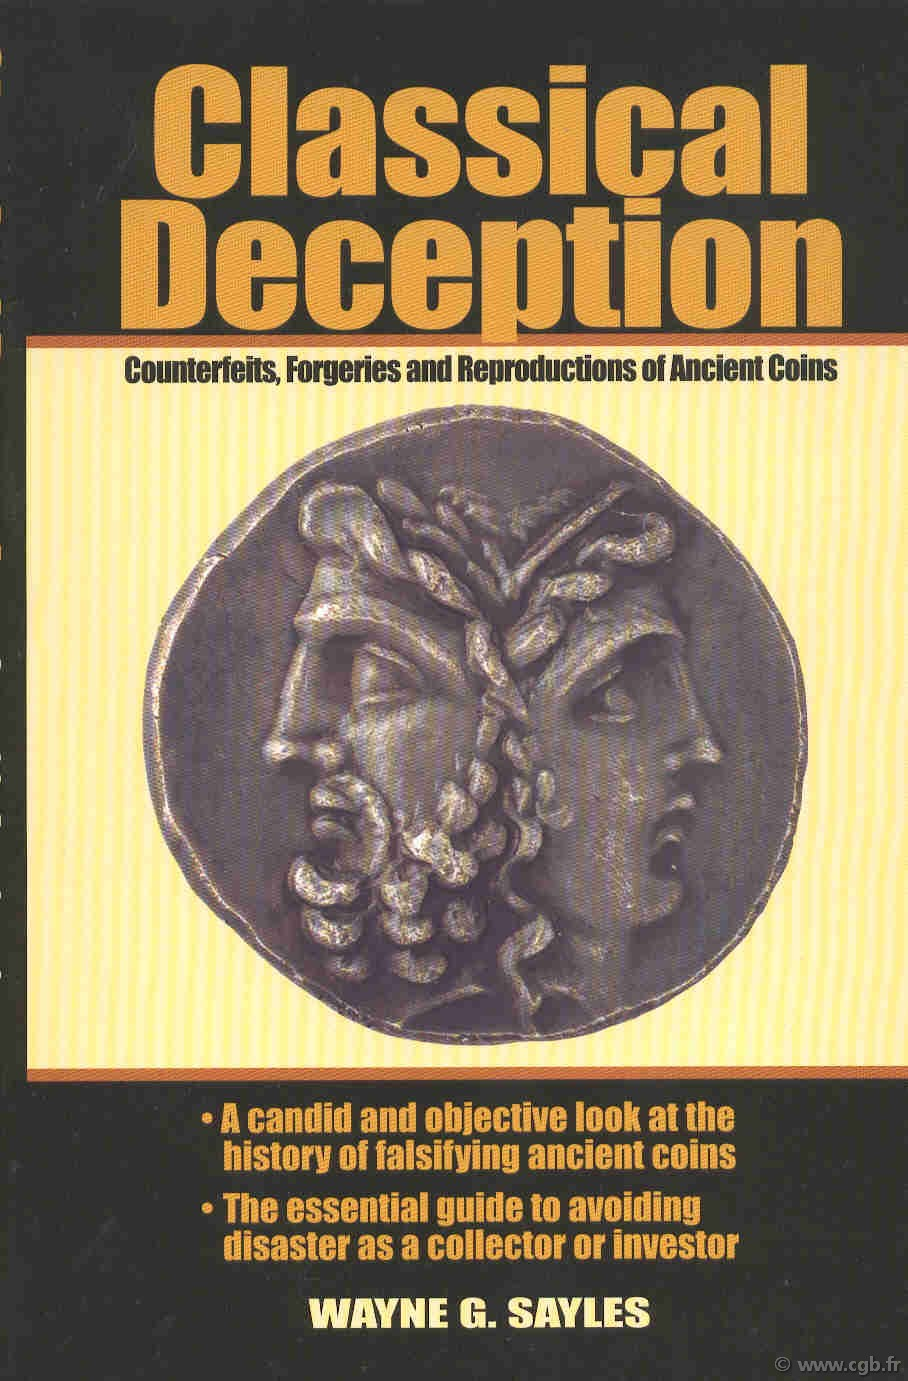 Classical deception, counterfeits, forgeries and reproductions of ancient coins SAYLES Wayne G.